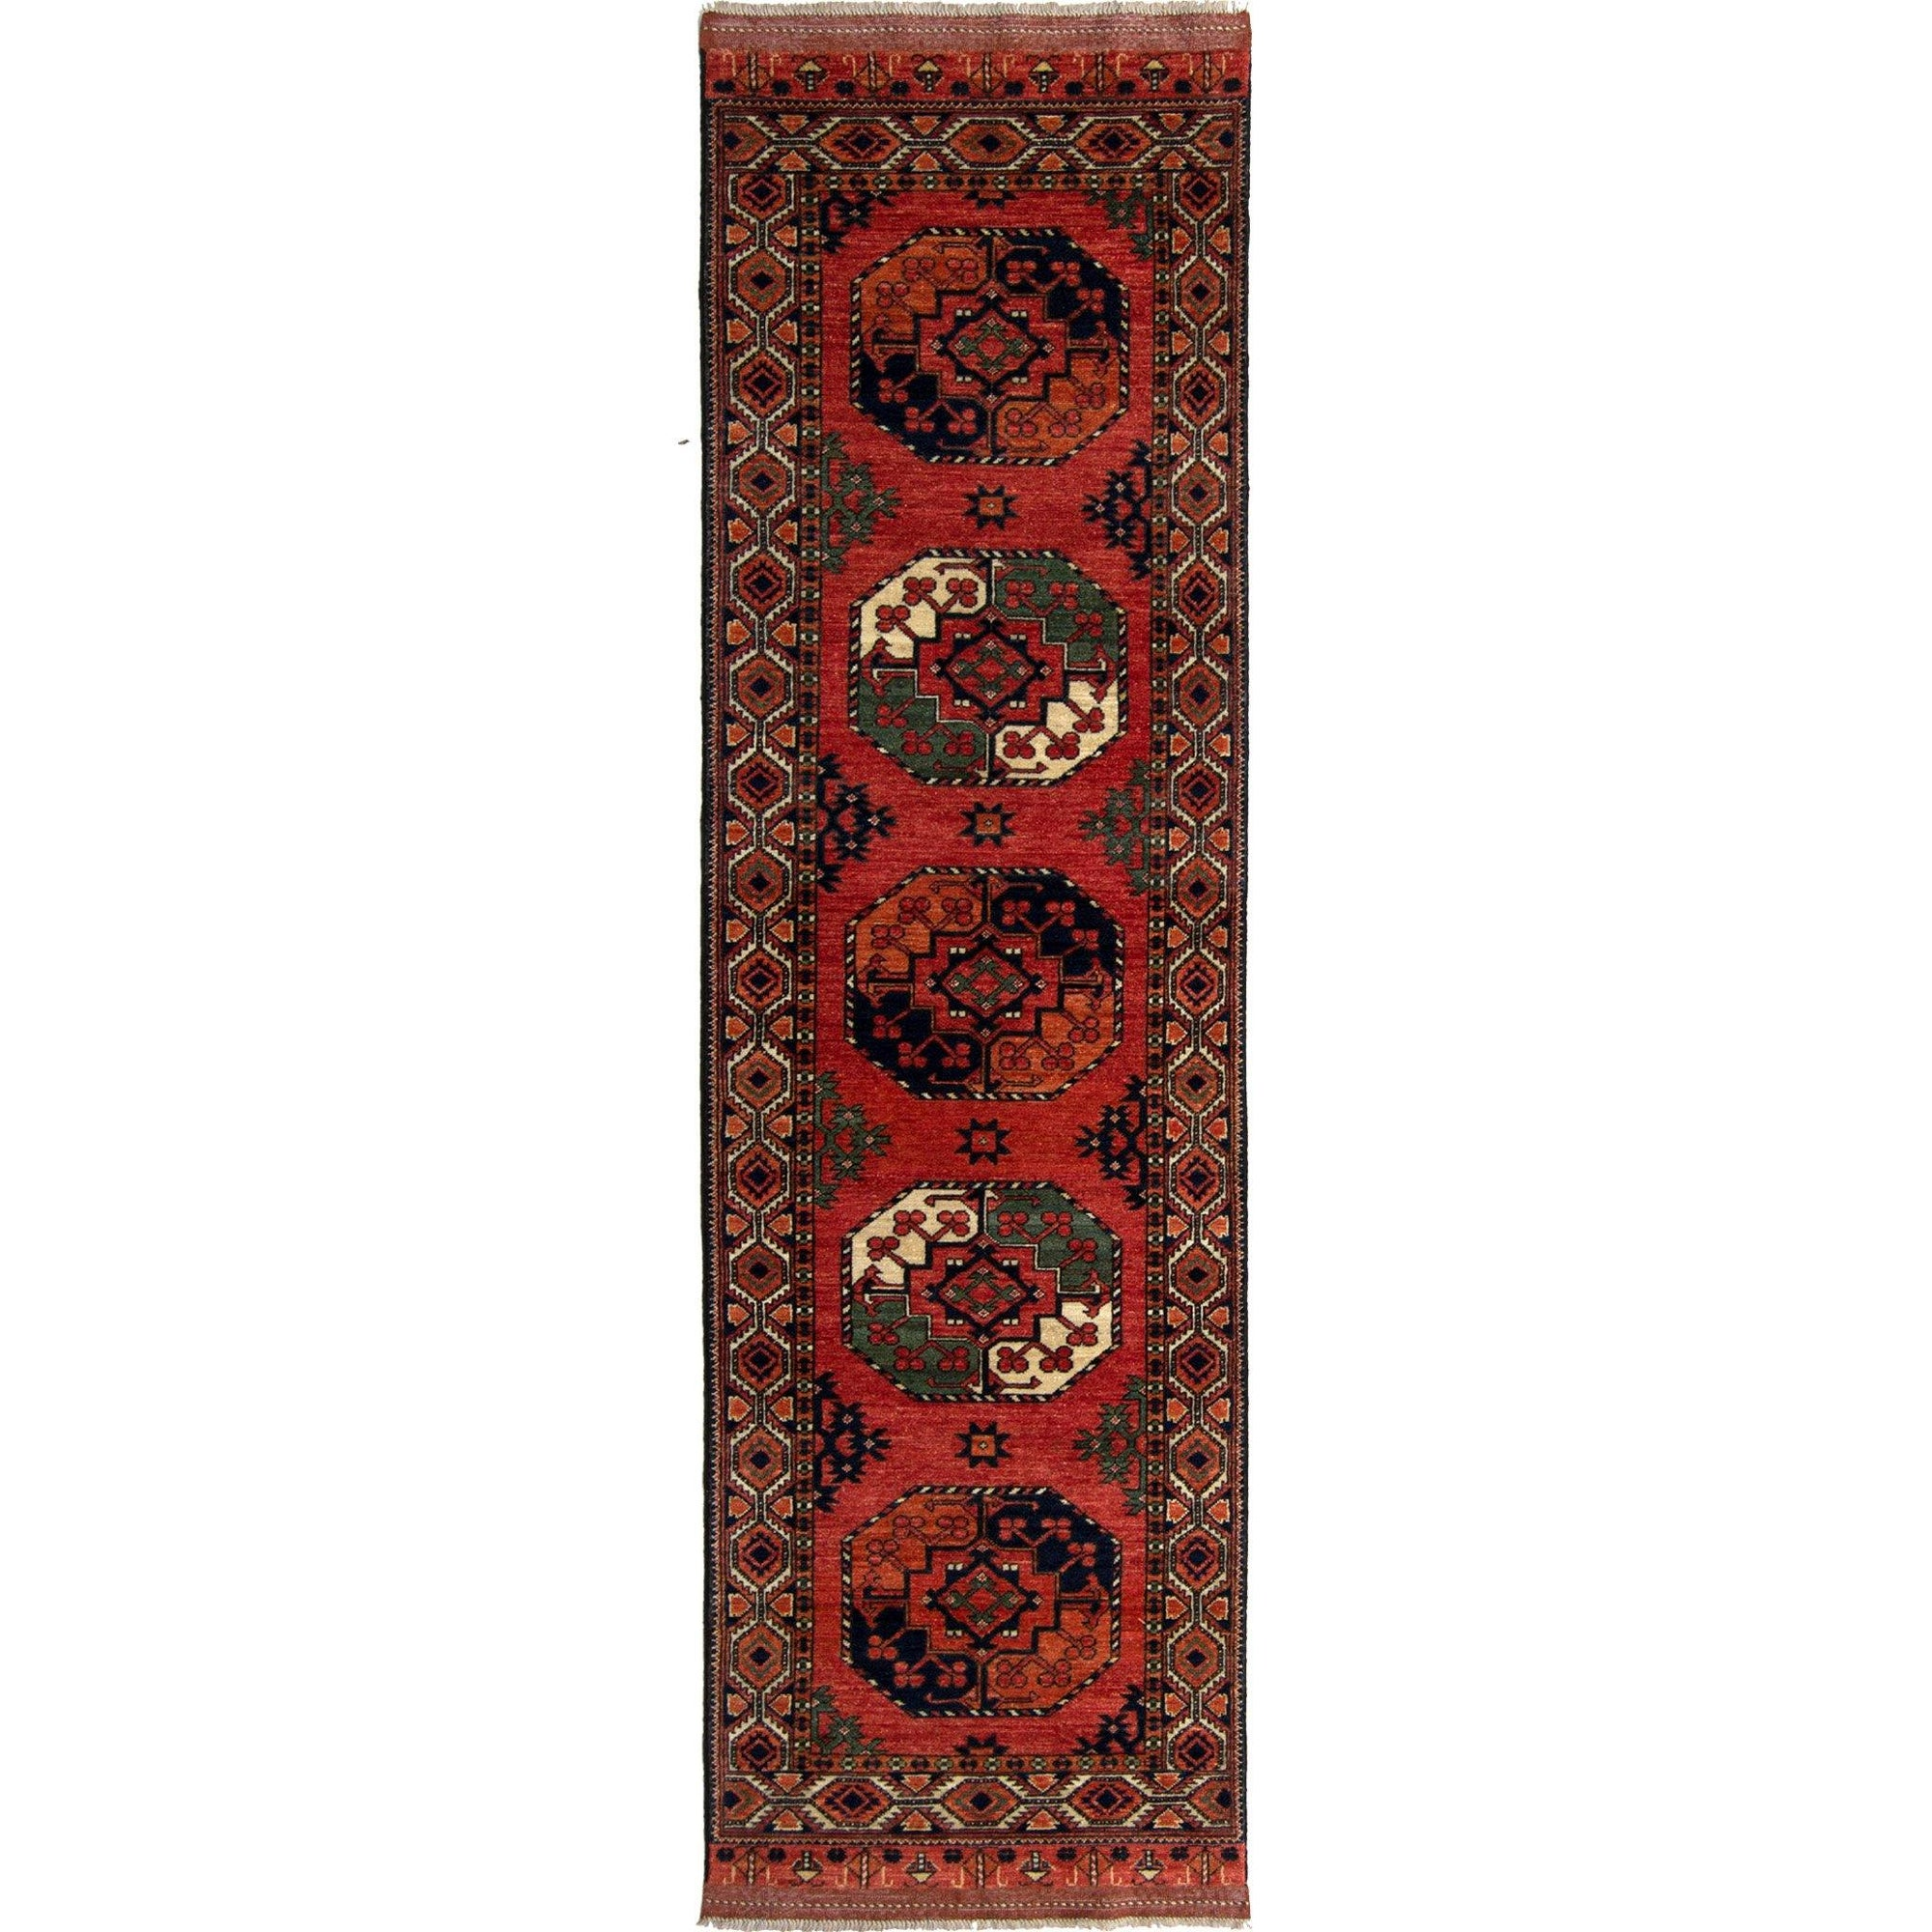 Fine Hand-knotted Tribal  Wool Runner 83cm x 292cm Persian-Rug | House-of-Haghi | NewMarket | Auckland | NZ | Handmade Persian Rugs | Hand Knotted Persian Rugs